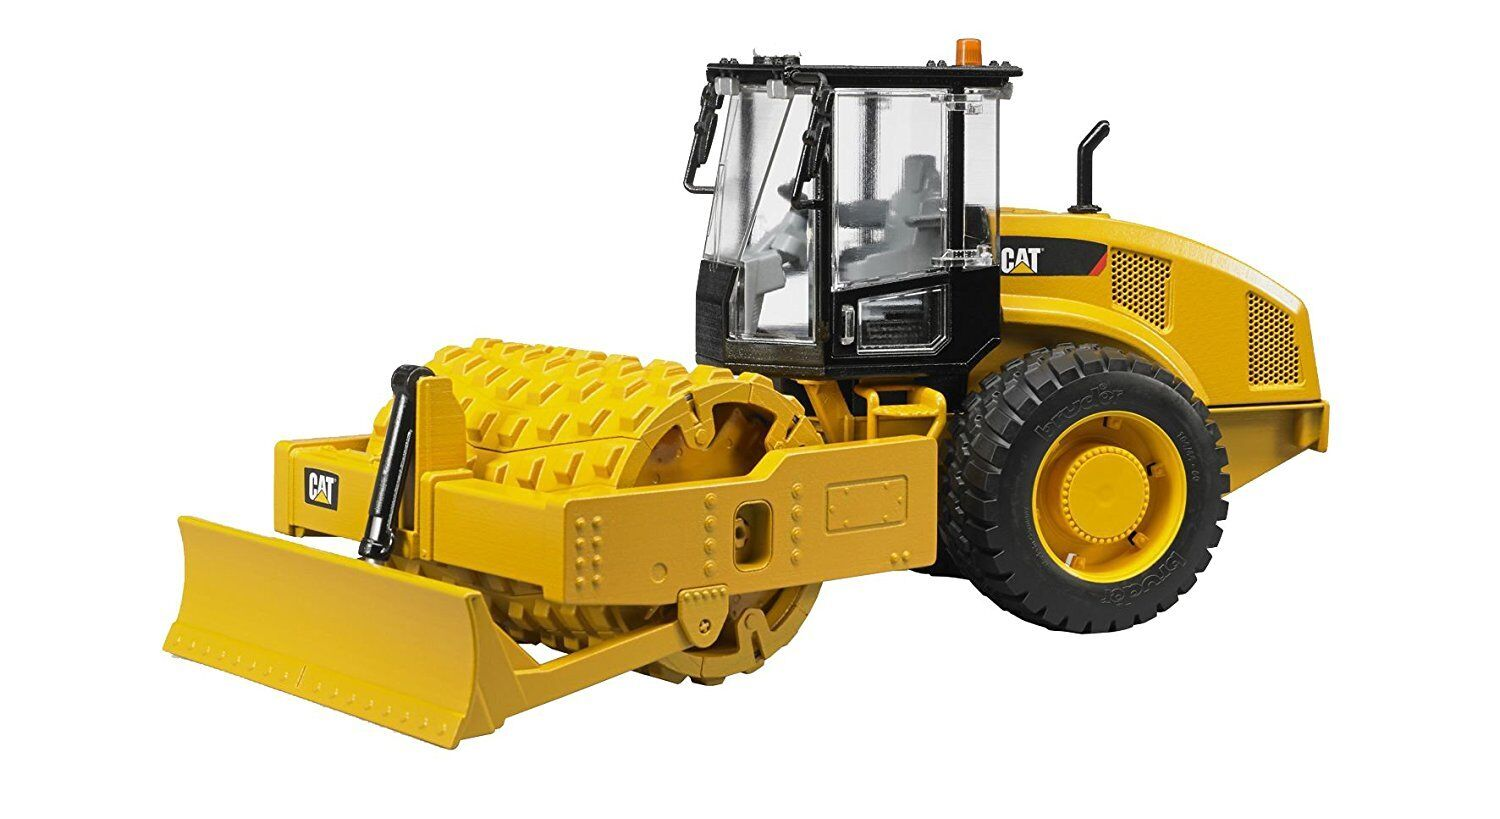 Bruder Caterpillar vibratory soil compactor with levelling blade - bruder 02450